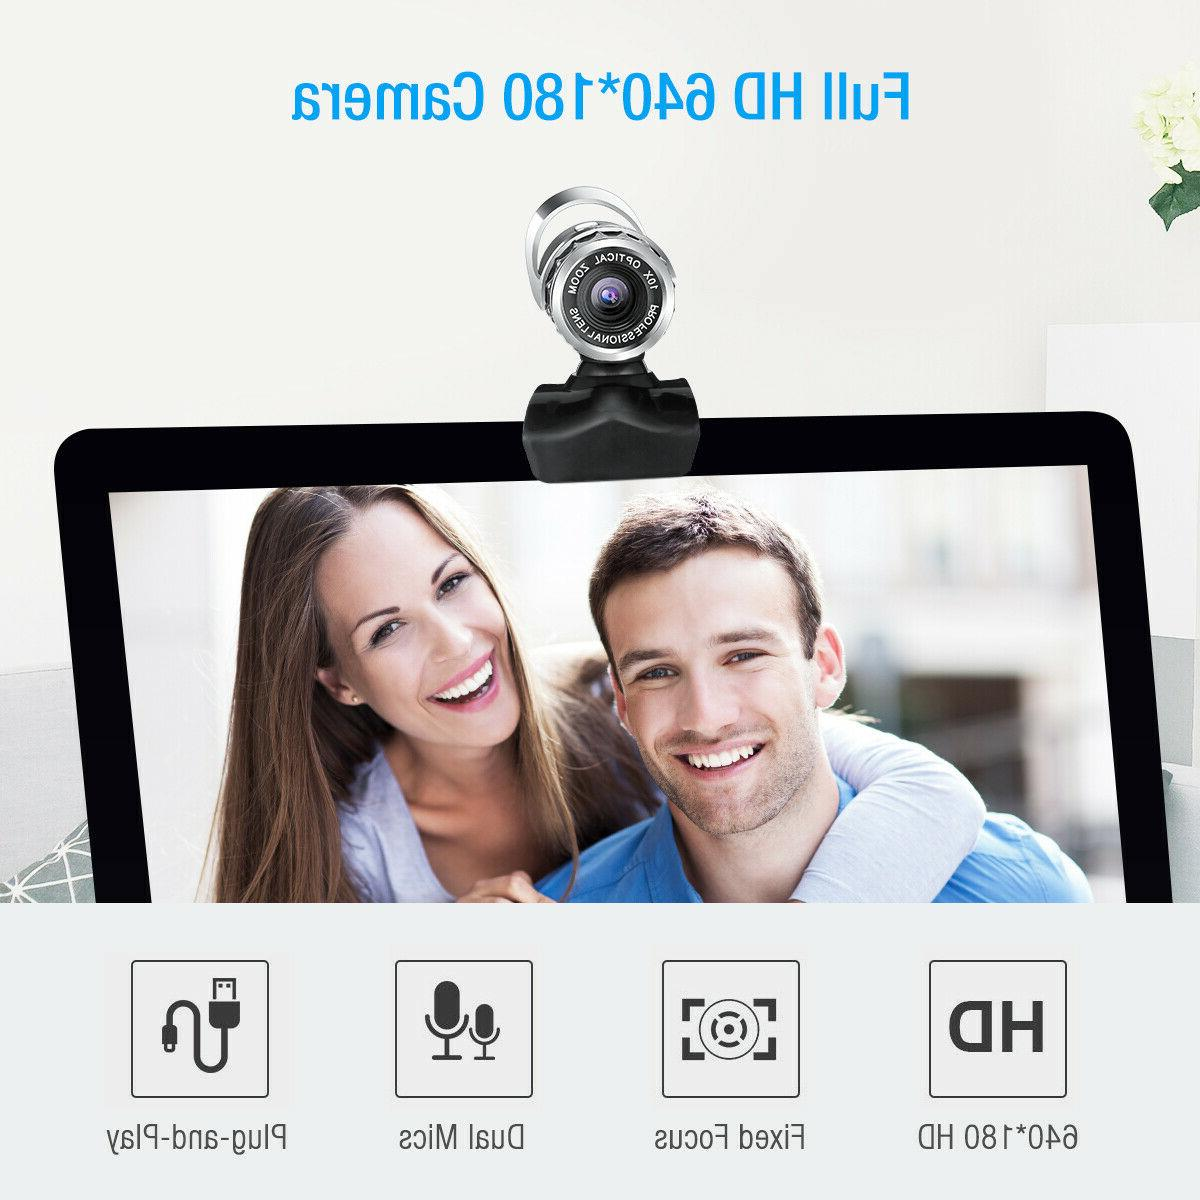 USB 2.0 Camera with Computer Laptops Macbook 30FPS